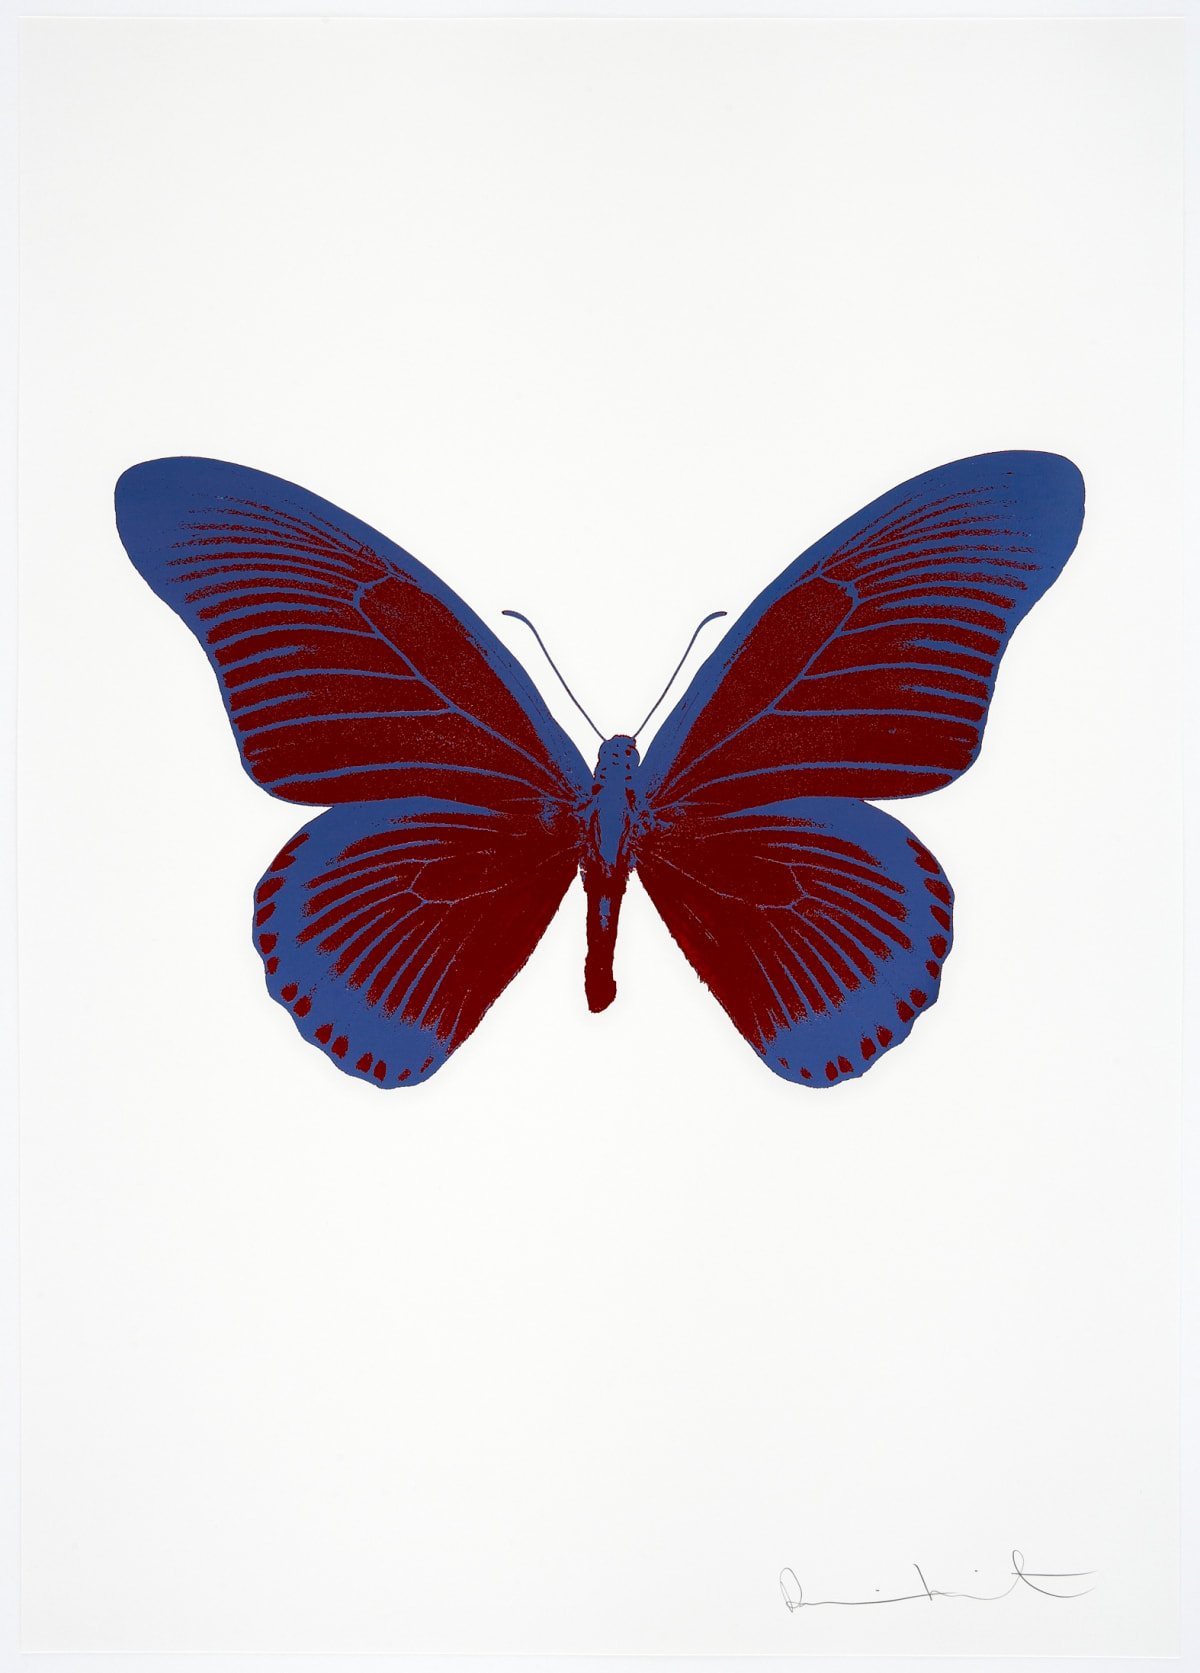 Damien Hirst The Souls IV - Chilli Red/Frost Blue Damien Hirst butterfly foil print for sale Damien Hirst print for sale , 2010 2 colour foil block on 300gsm Arches 88 archival paper. Signed and numbered. Published by Paul Stolper and Other Criteria 72 x 51cm OC8013 / 1418-36 Edition of 15